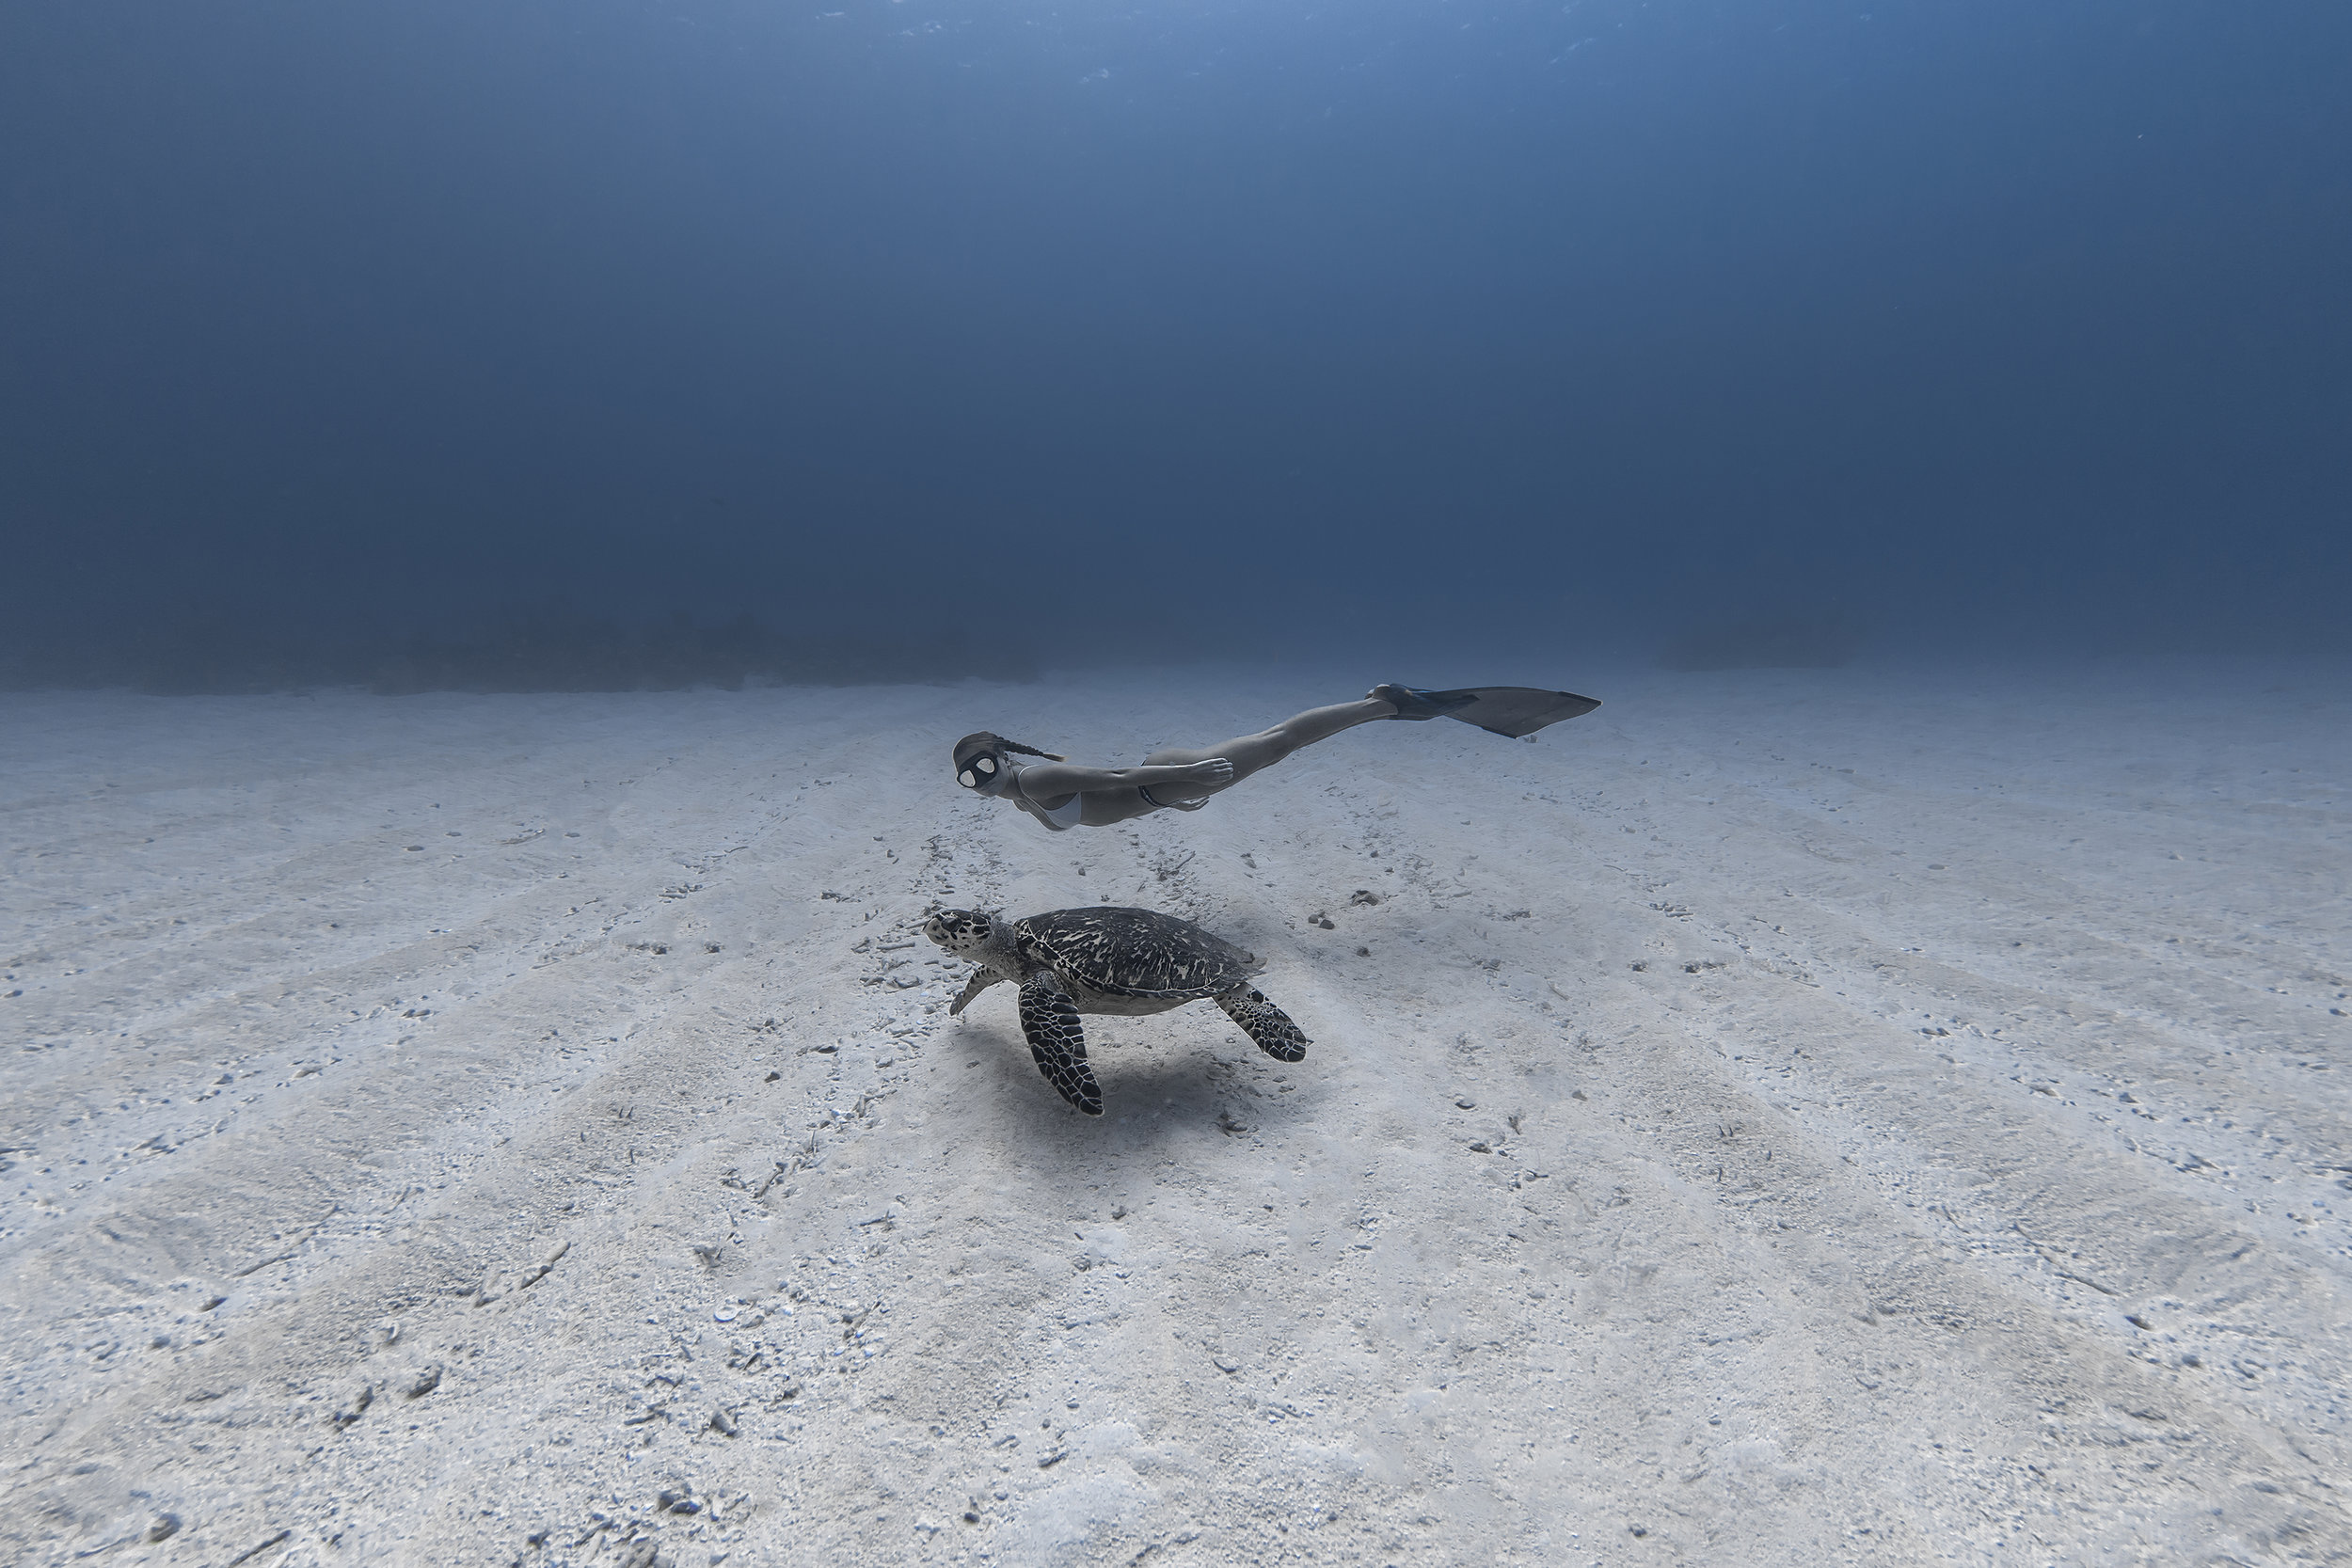 Turtle and freediver in the cayman islands CREDIT: Jason Washington / Coral Reef Image Bank